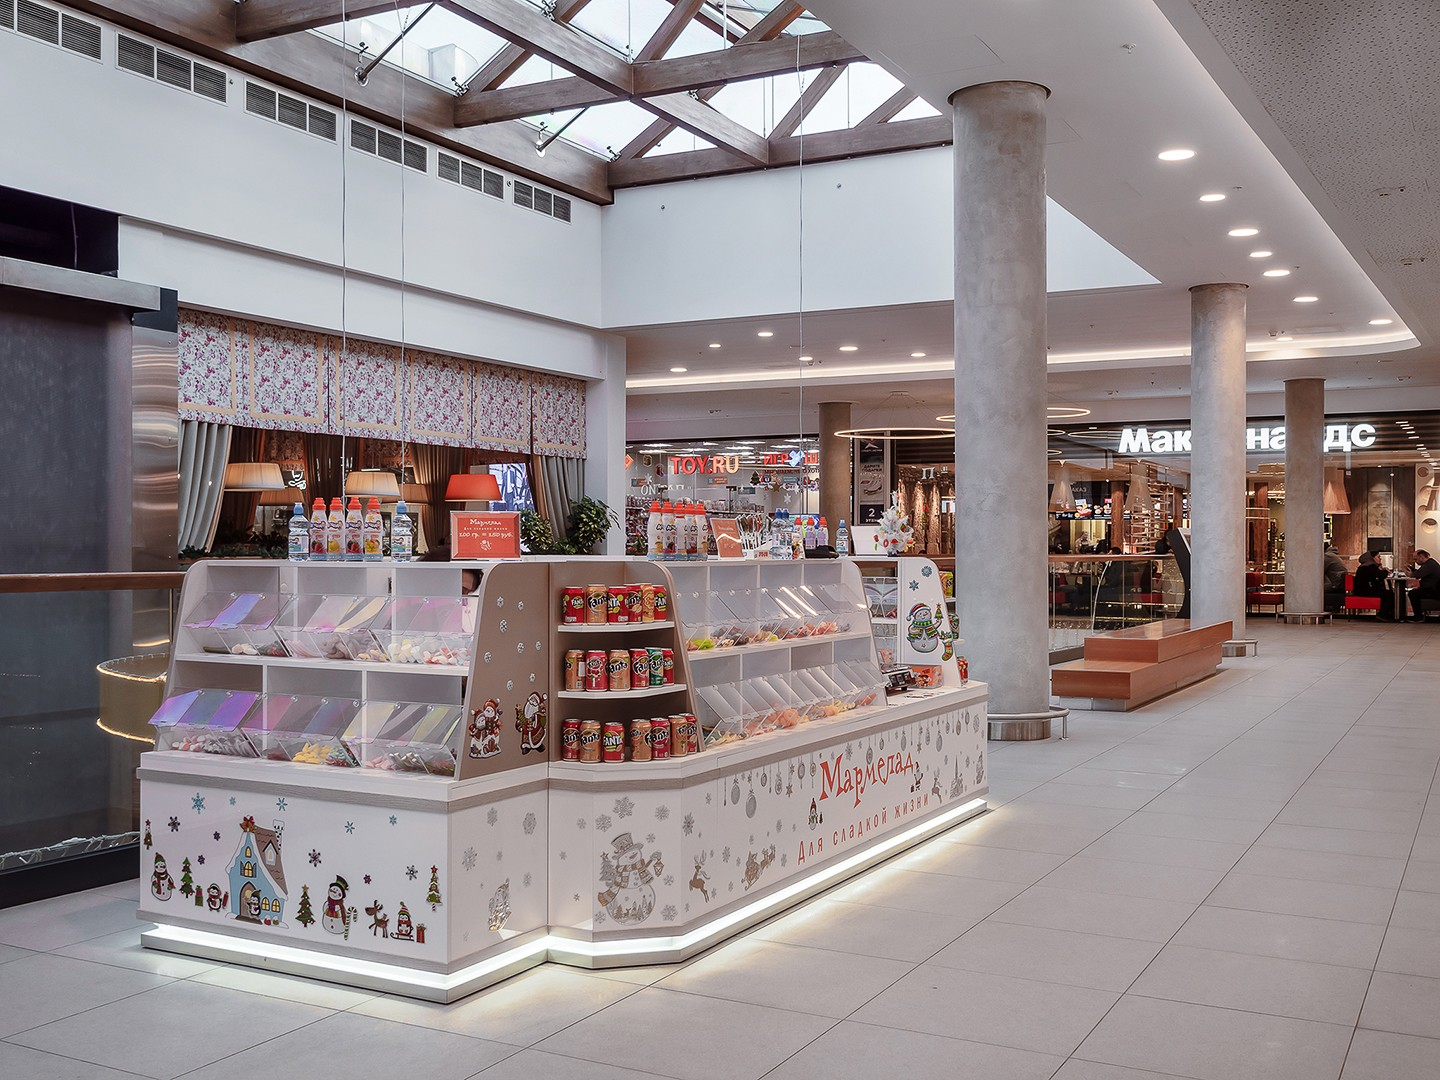 Professional interior photography. Mall locations